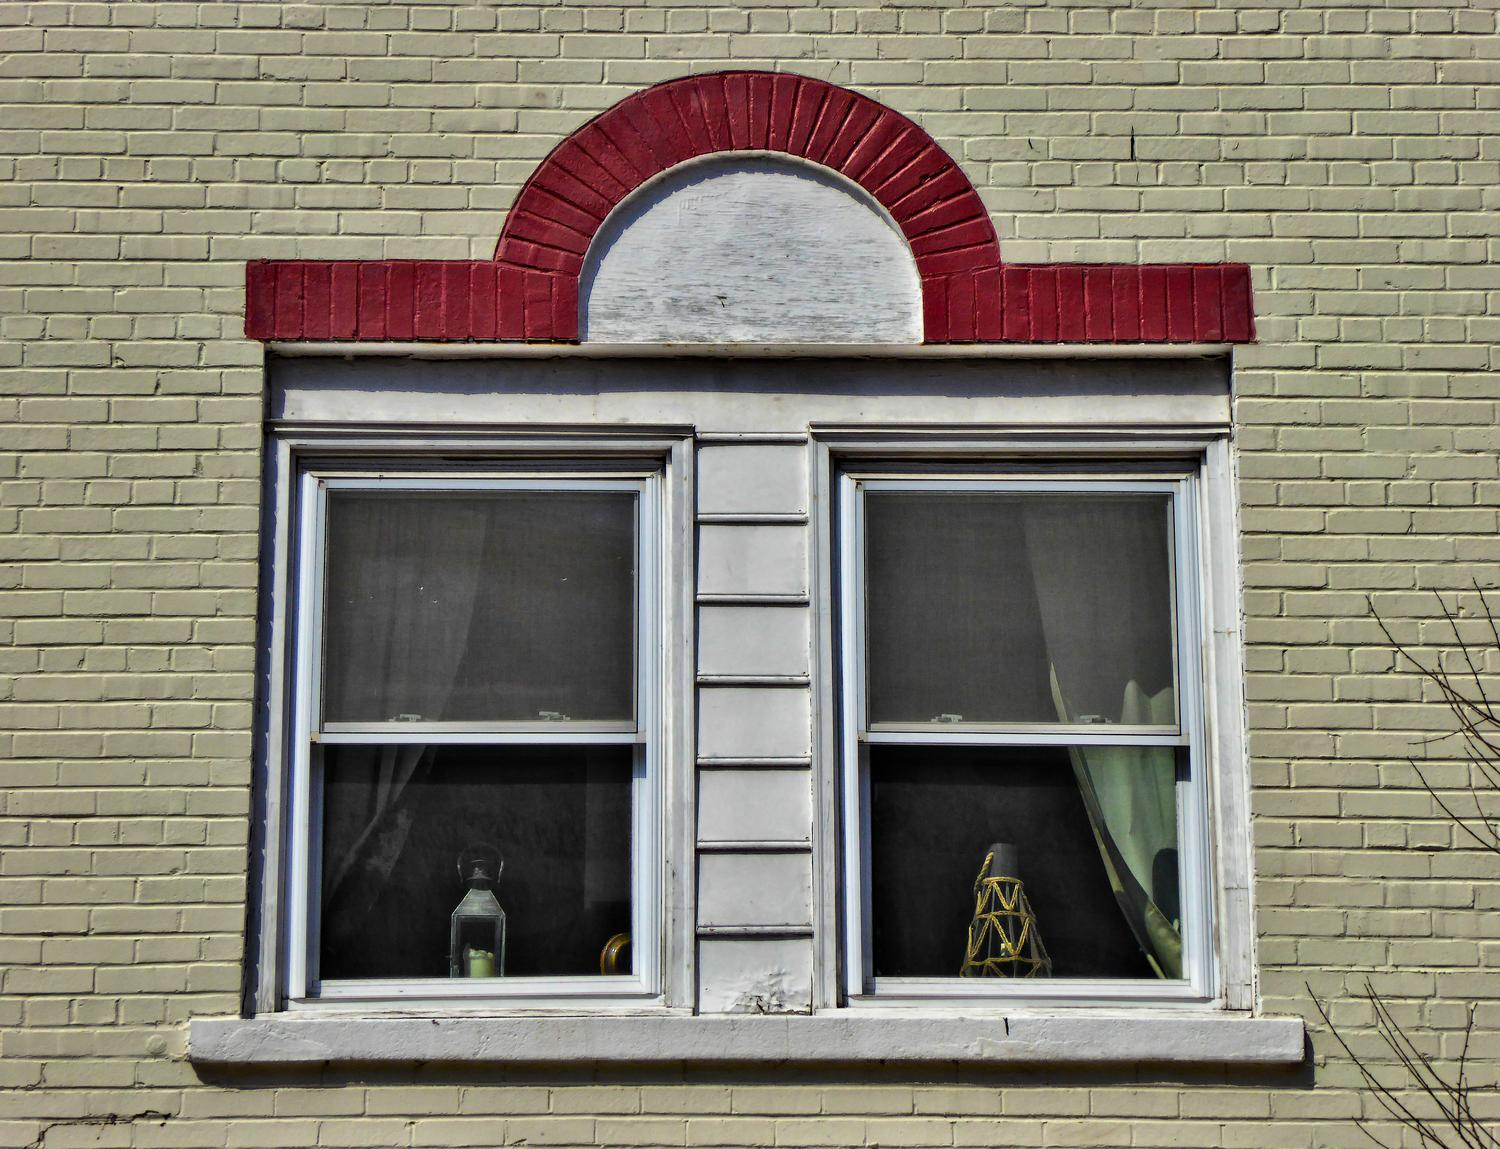 - Old windows with an interesting red detail - Manassas Virginia, Panasonic DMC-ZS40 - Tony Karp, design, art, photography, techno-impressionist, techno-impressionism, aerial photography , drone , drones , dji , mavic pro , video , 3D printing - Books -